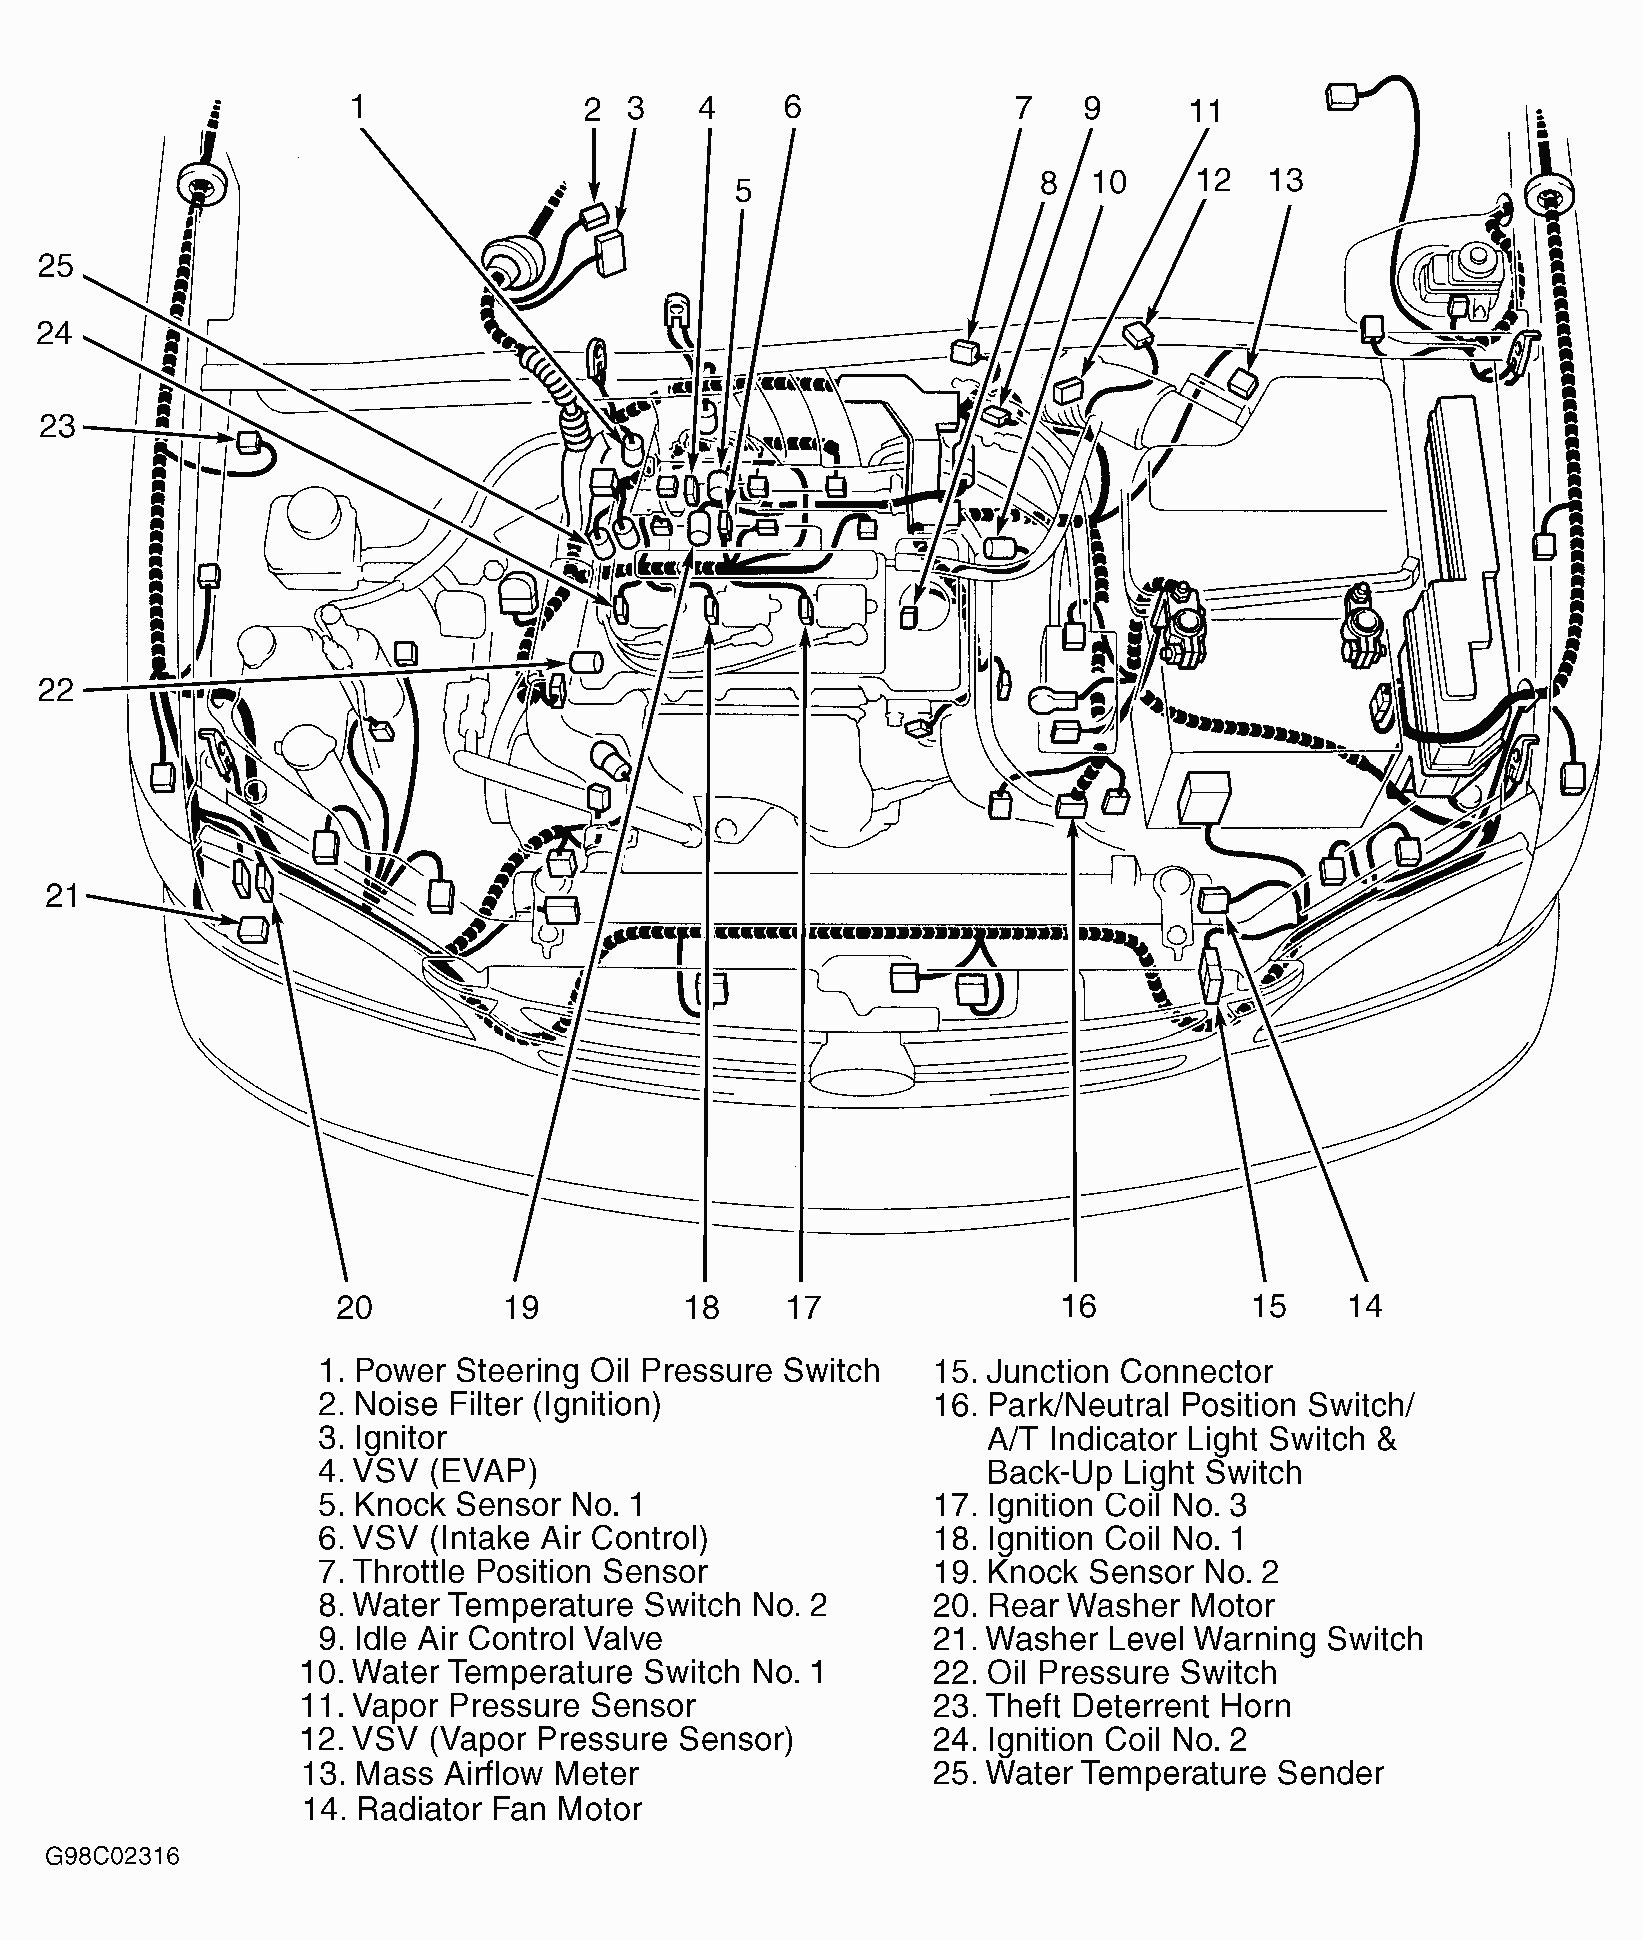 hight resolution of 2000 toyota tundra 4 7 engine diagram wiring diagram used 2000 toyota tundra v8 engine diagram 2000 toyota tundra engine diagram